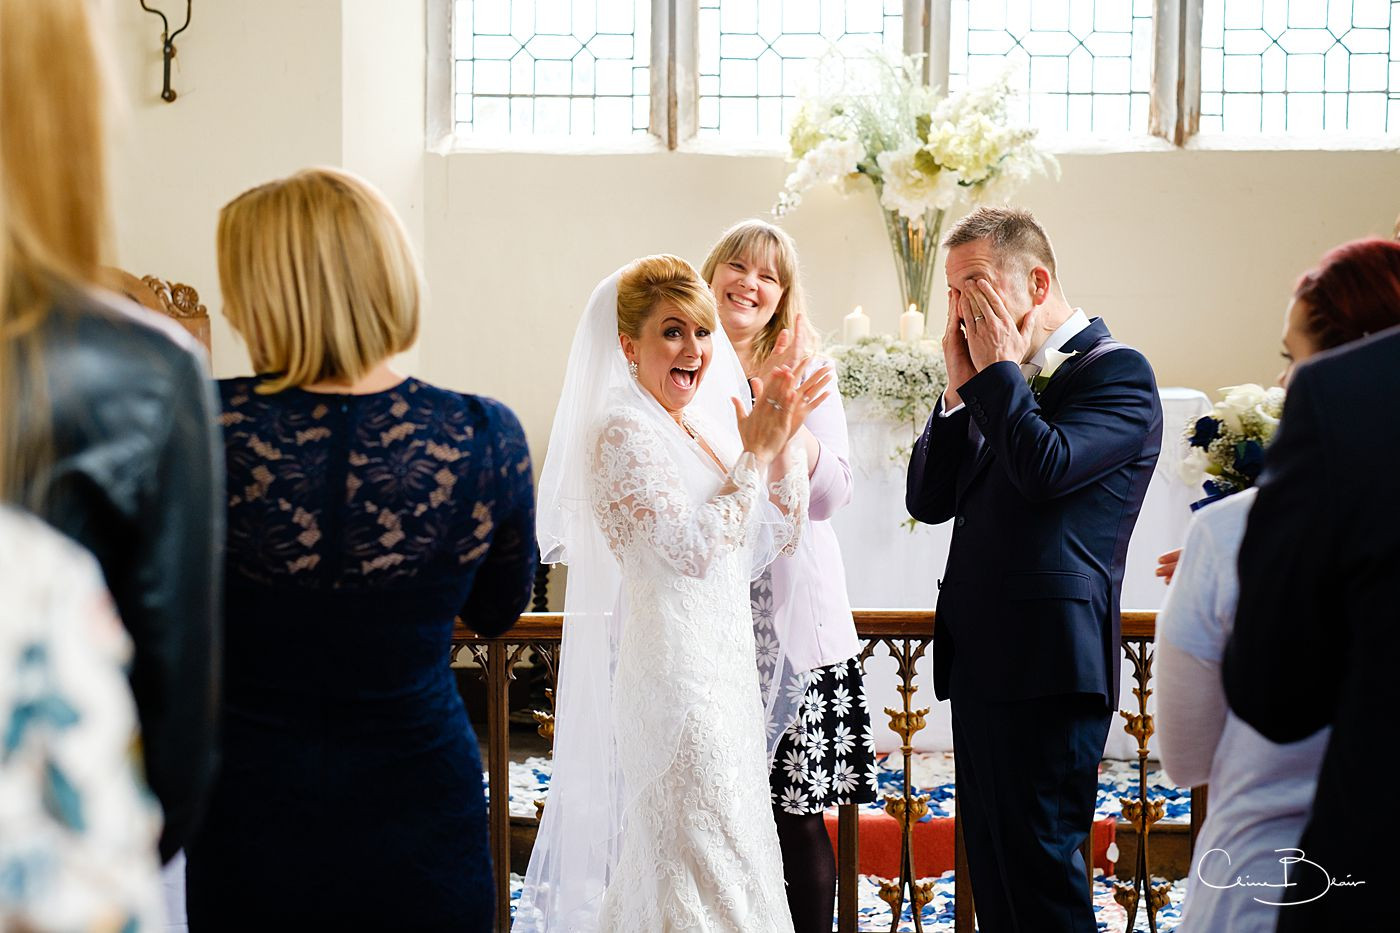 Jubilant bride and groom after their wedding ceremony at Grafton Manor chapel